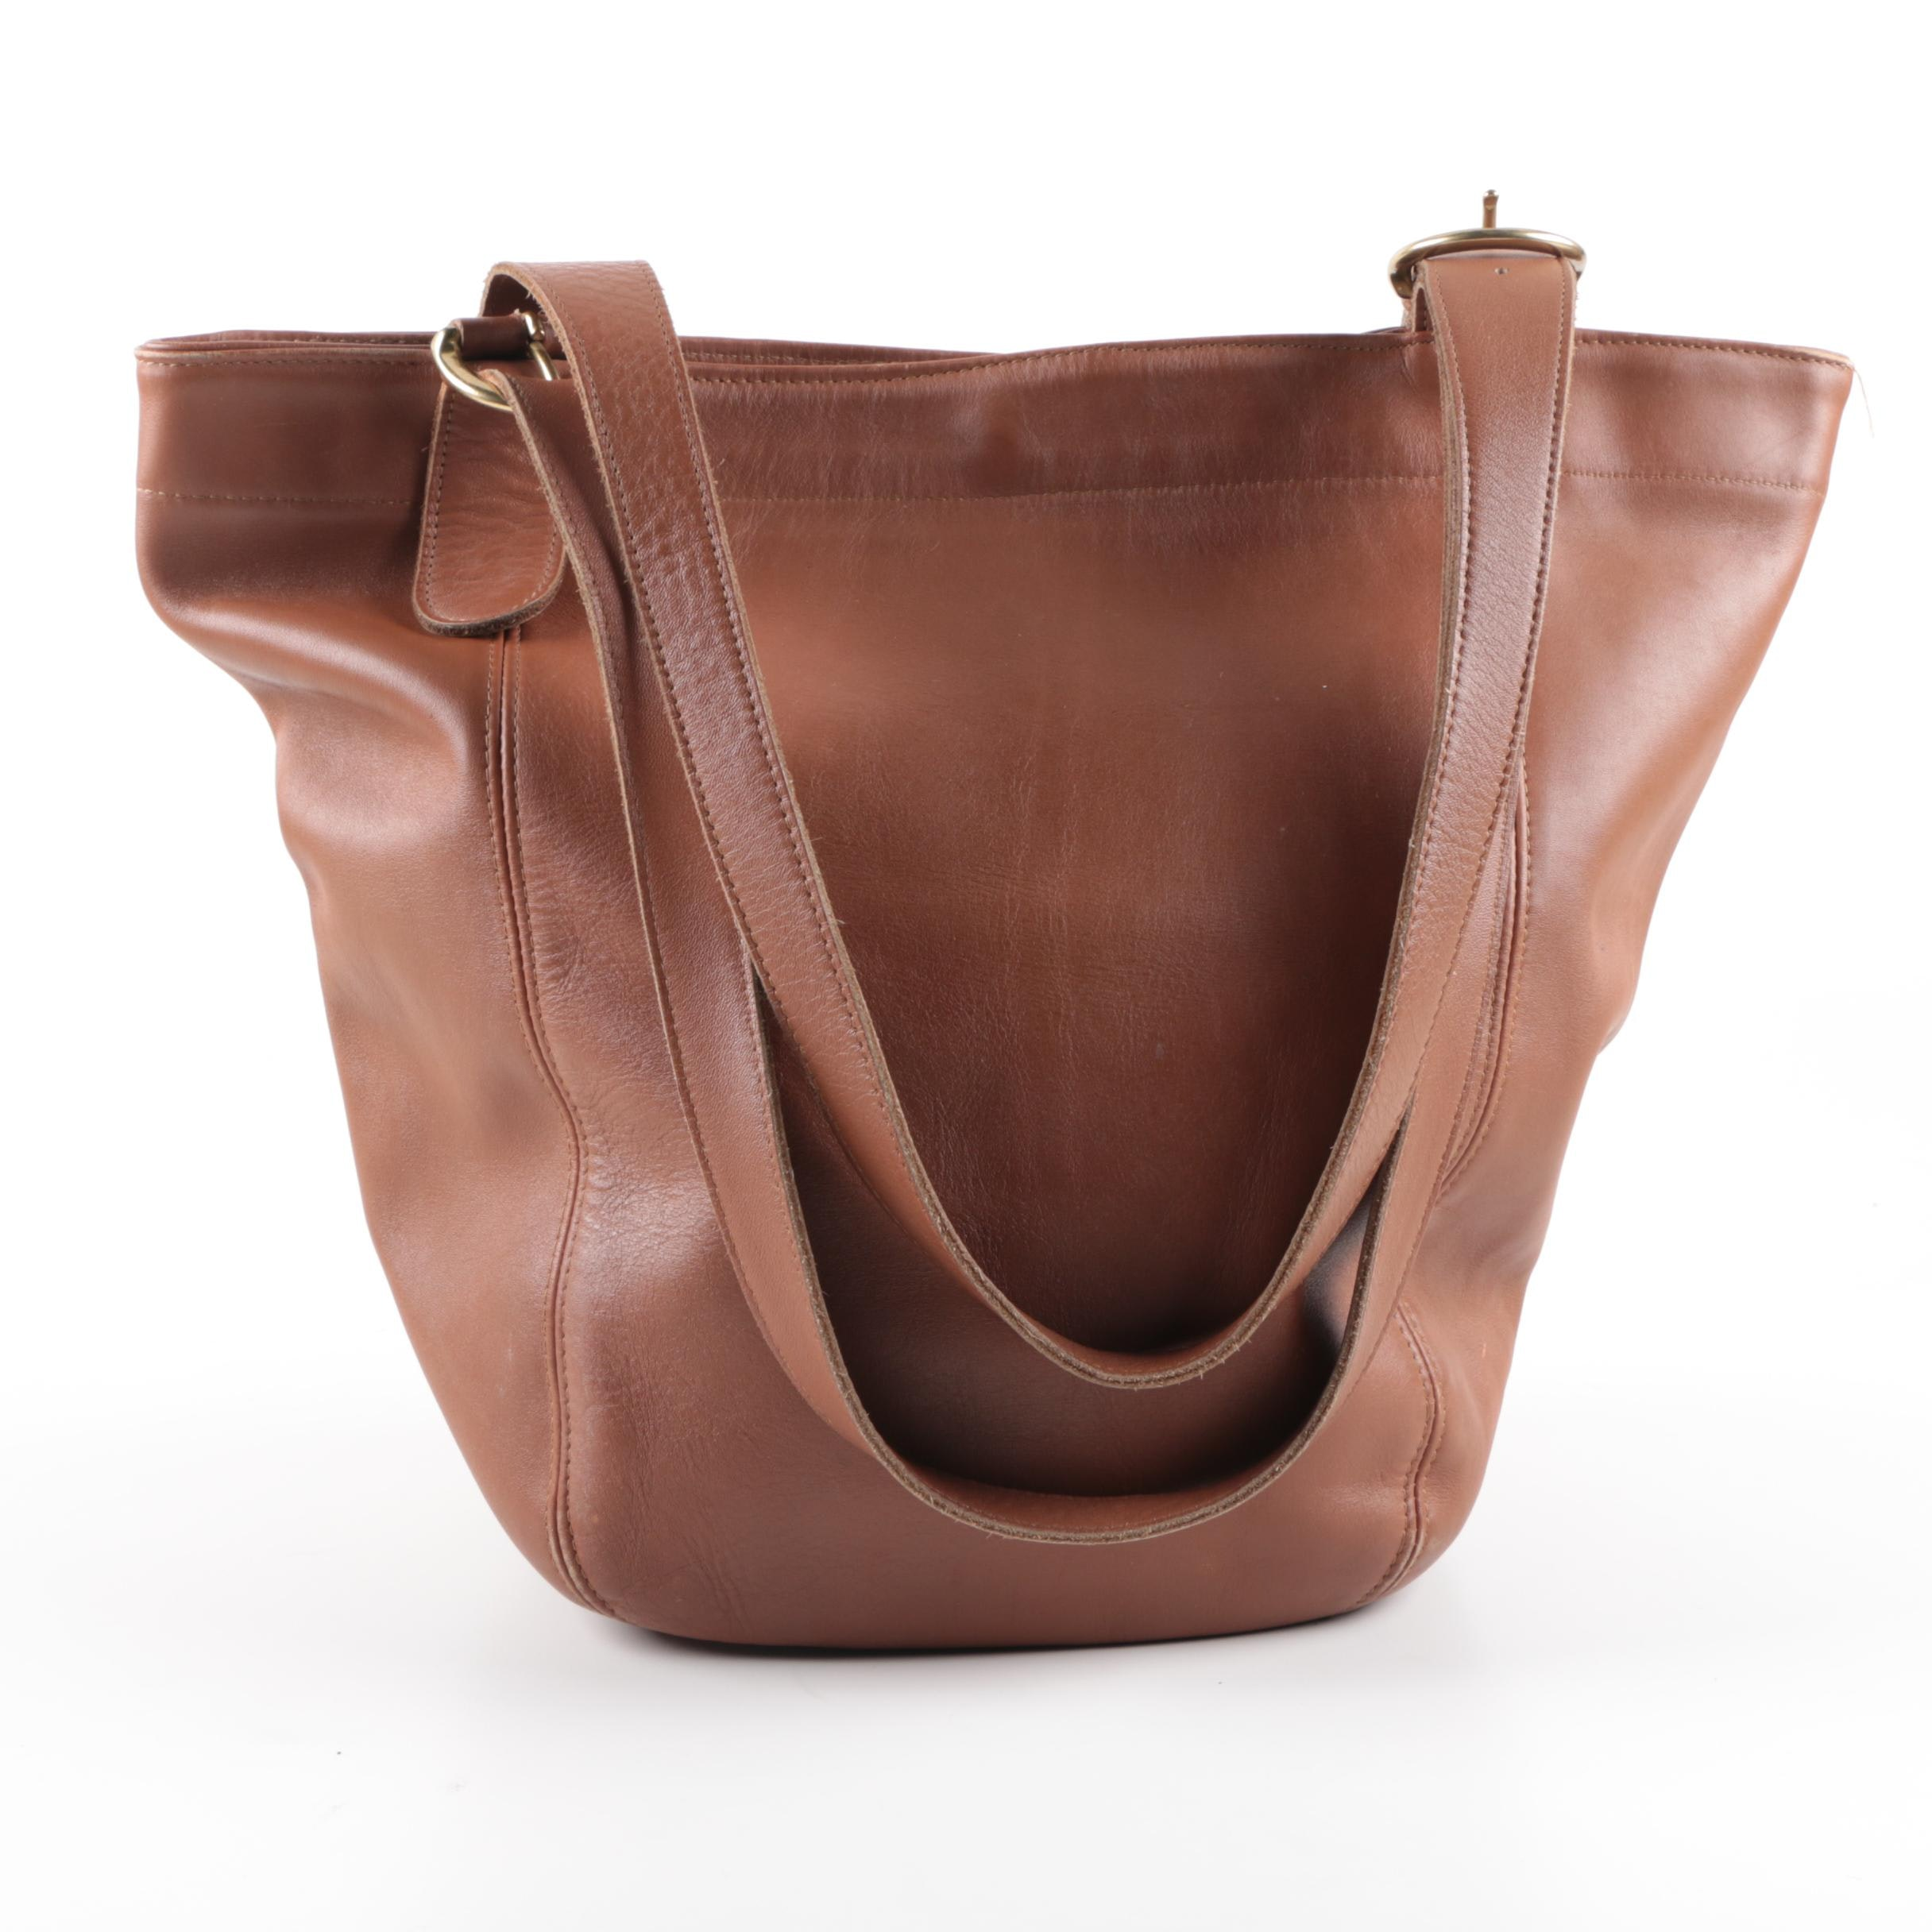 Coach Soho Brown Leather Tote Bag